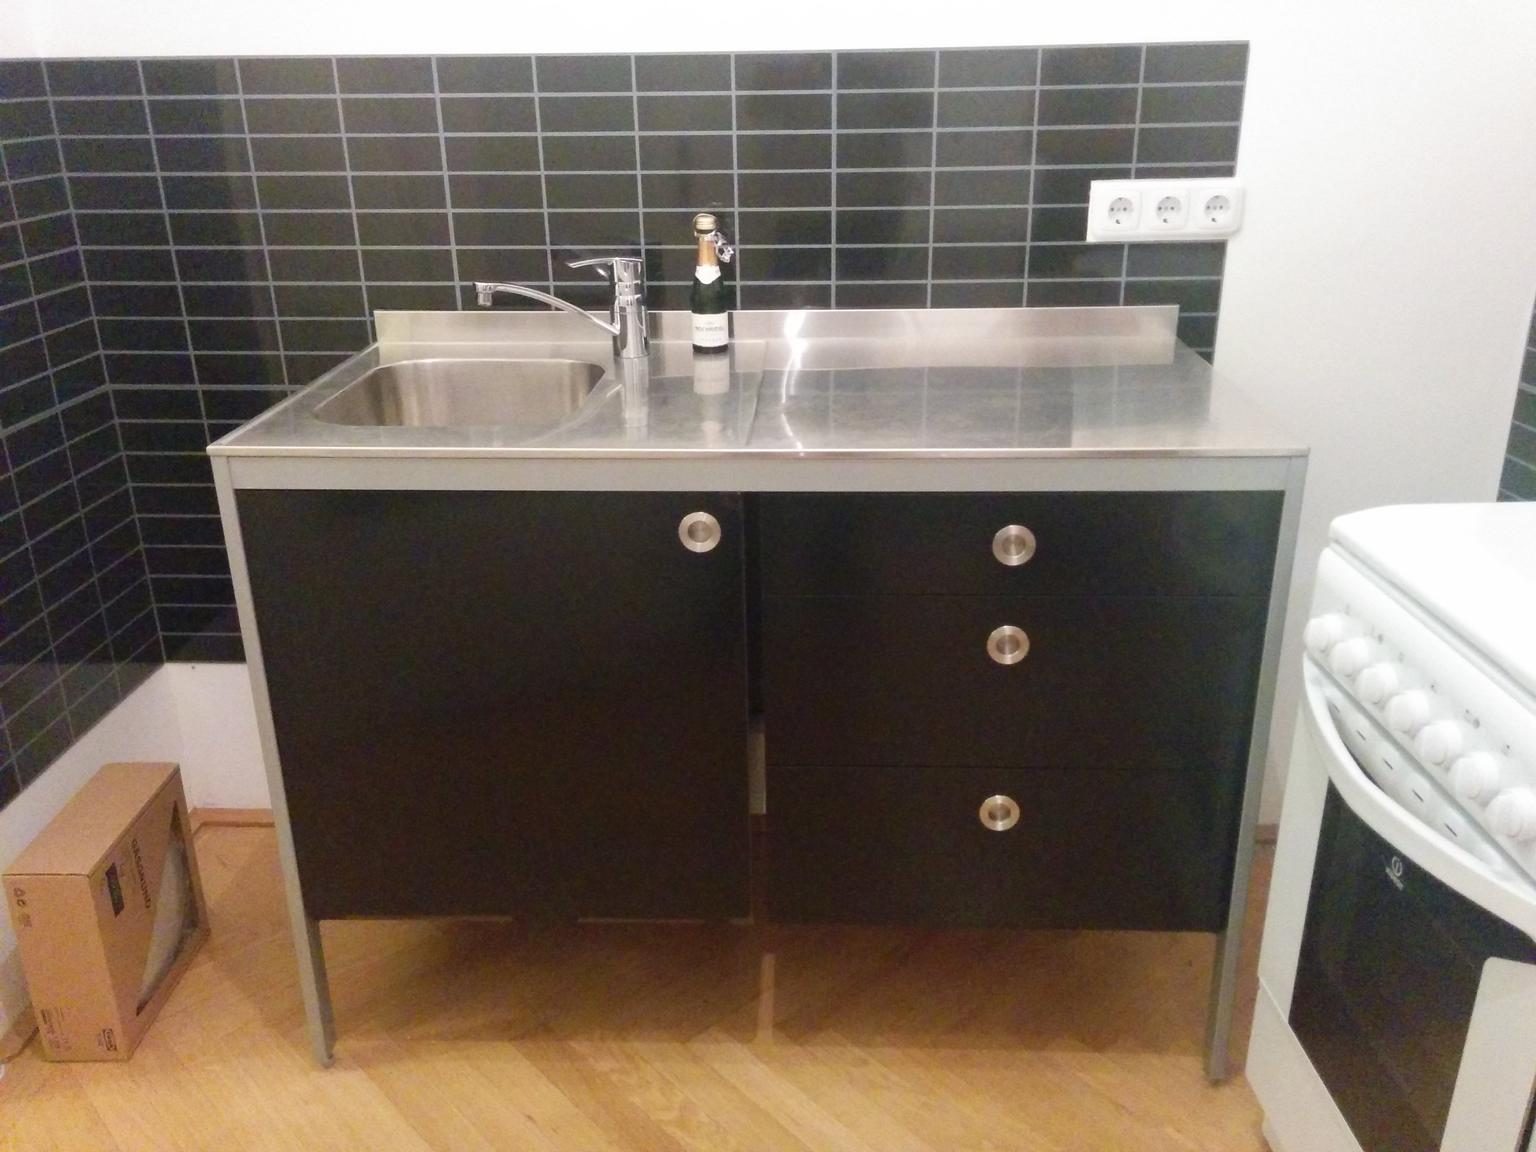 Ikea Udden Küche in 1170 Wien for €50.00 for sale - Shpock